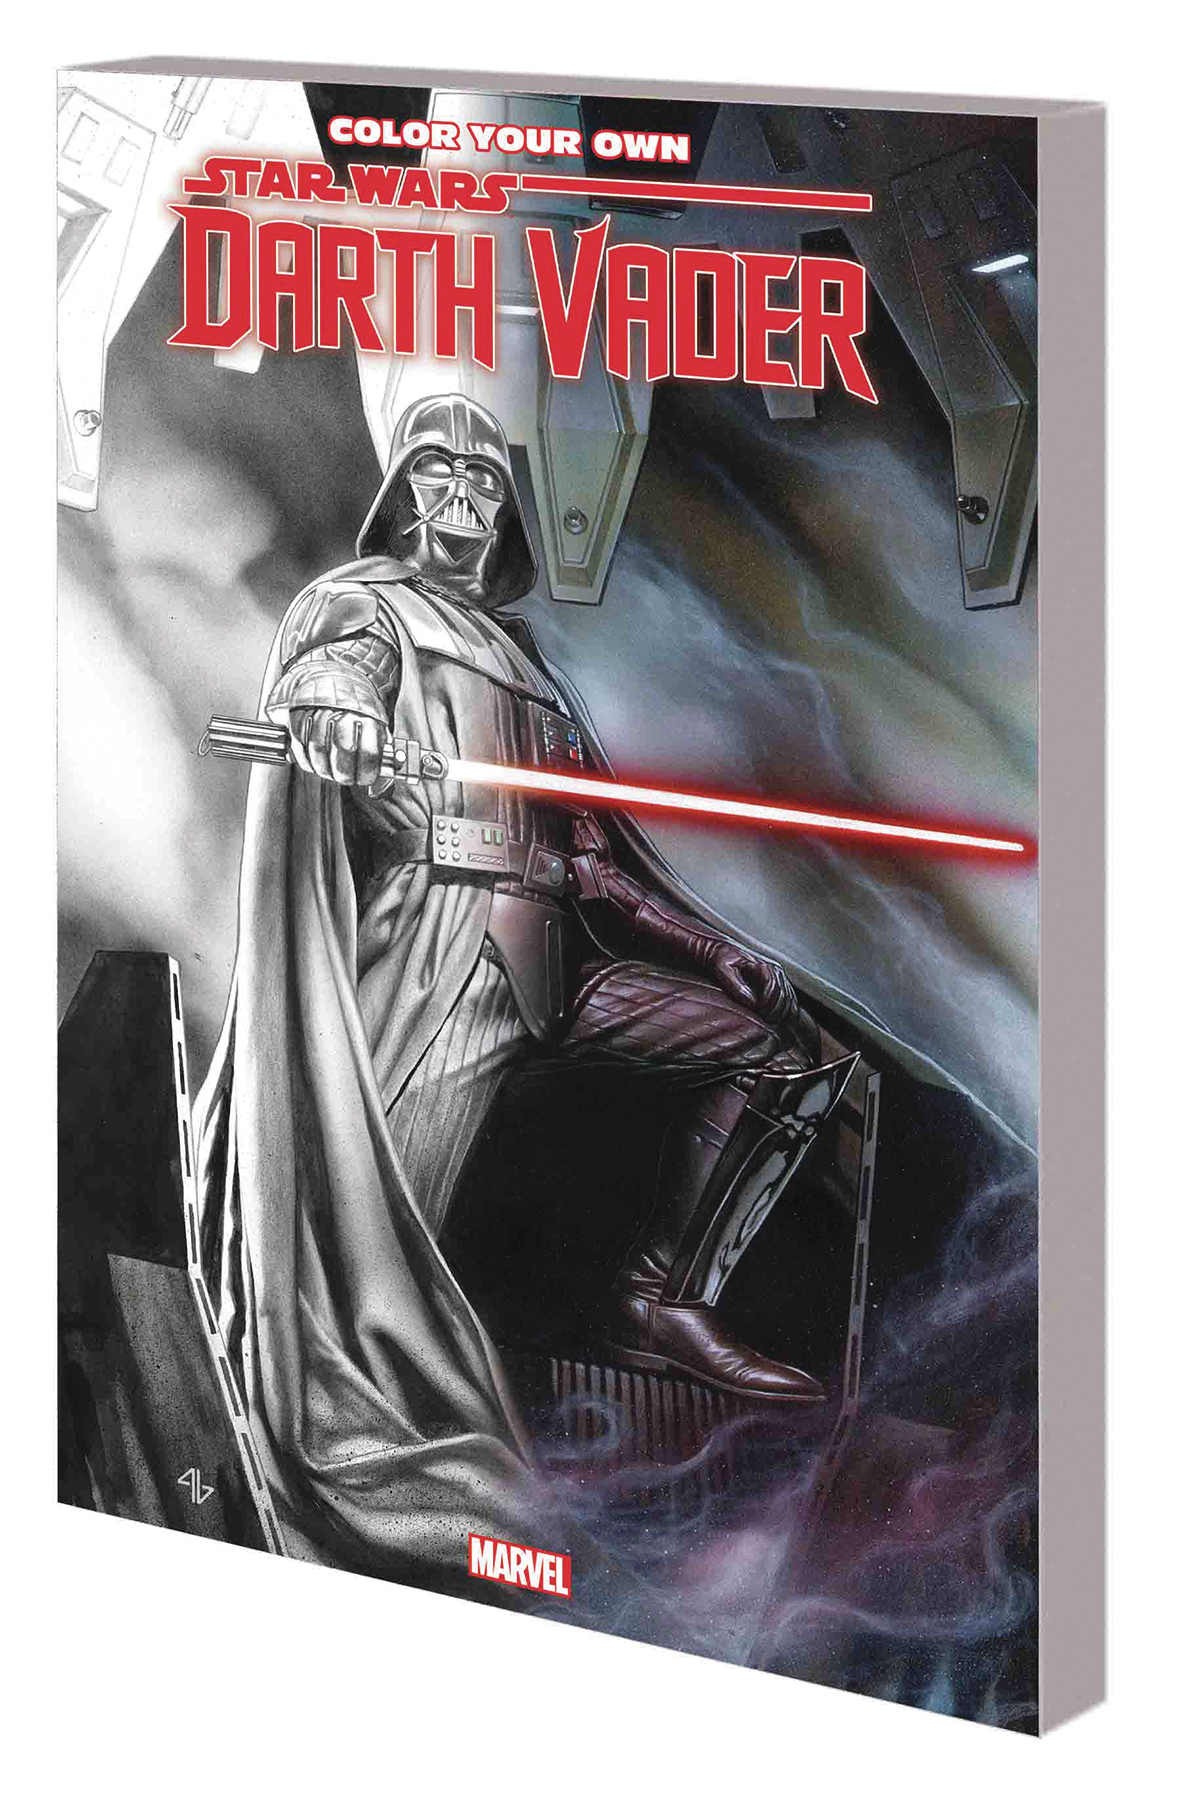 COLOR YOUR OWN STAR WARS DARTH VADER